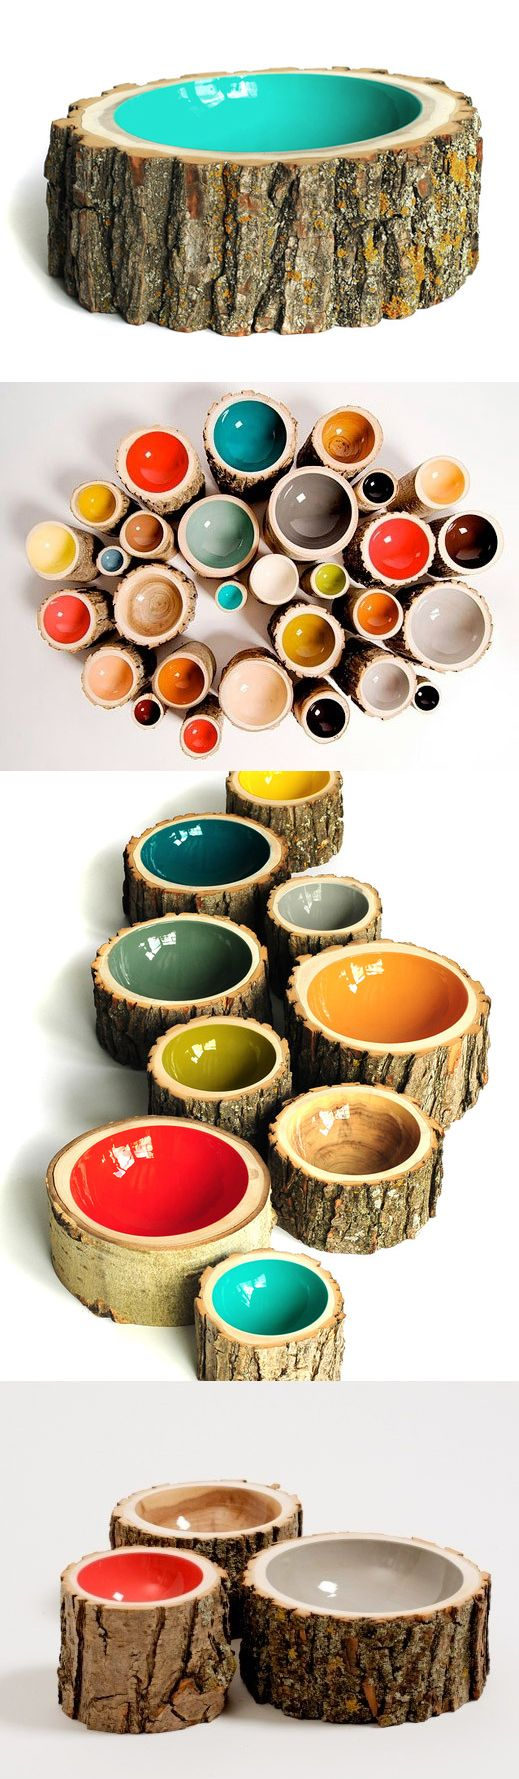 Log Bowl Large Aqua by Loyal Loot // Made of a reclaimed log with a colorful gloss interior #productdesign